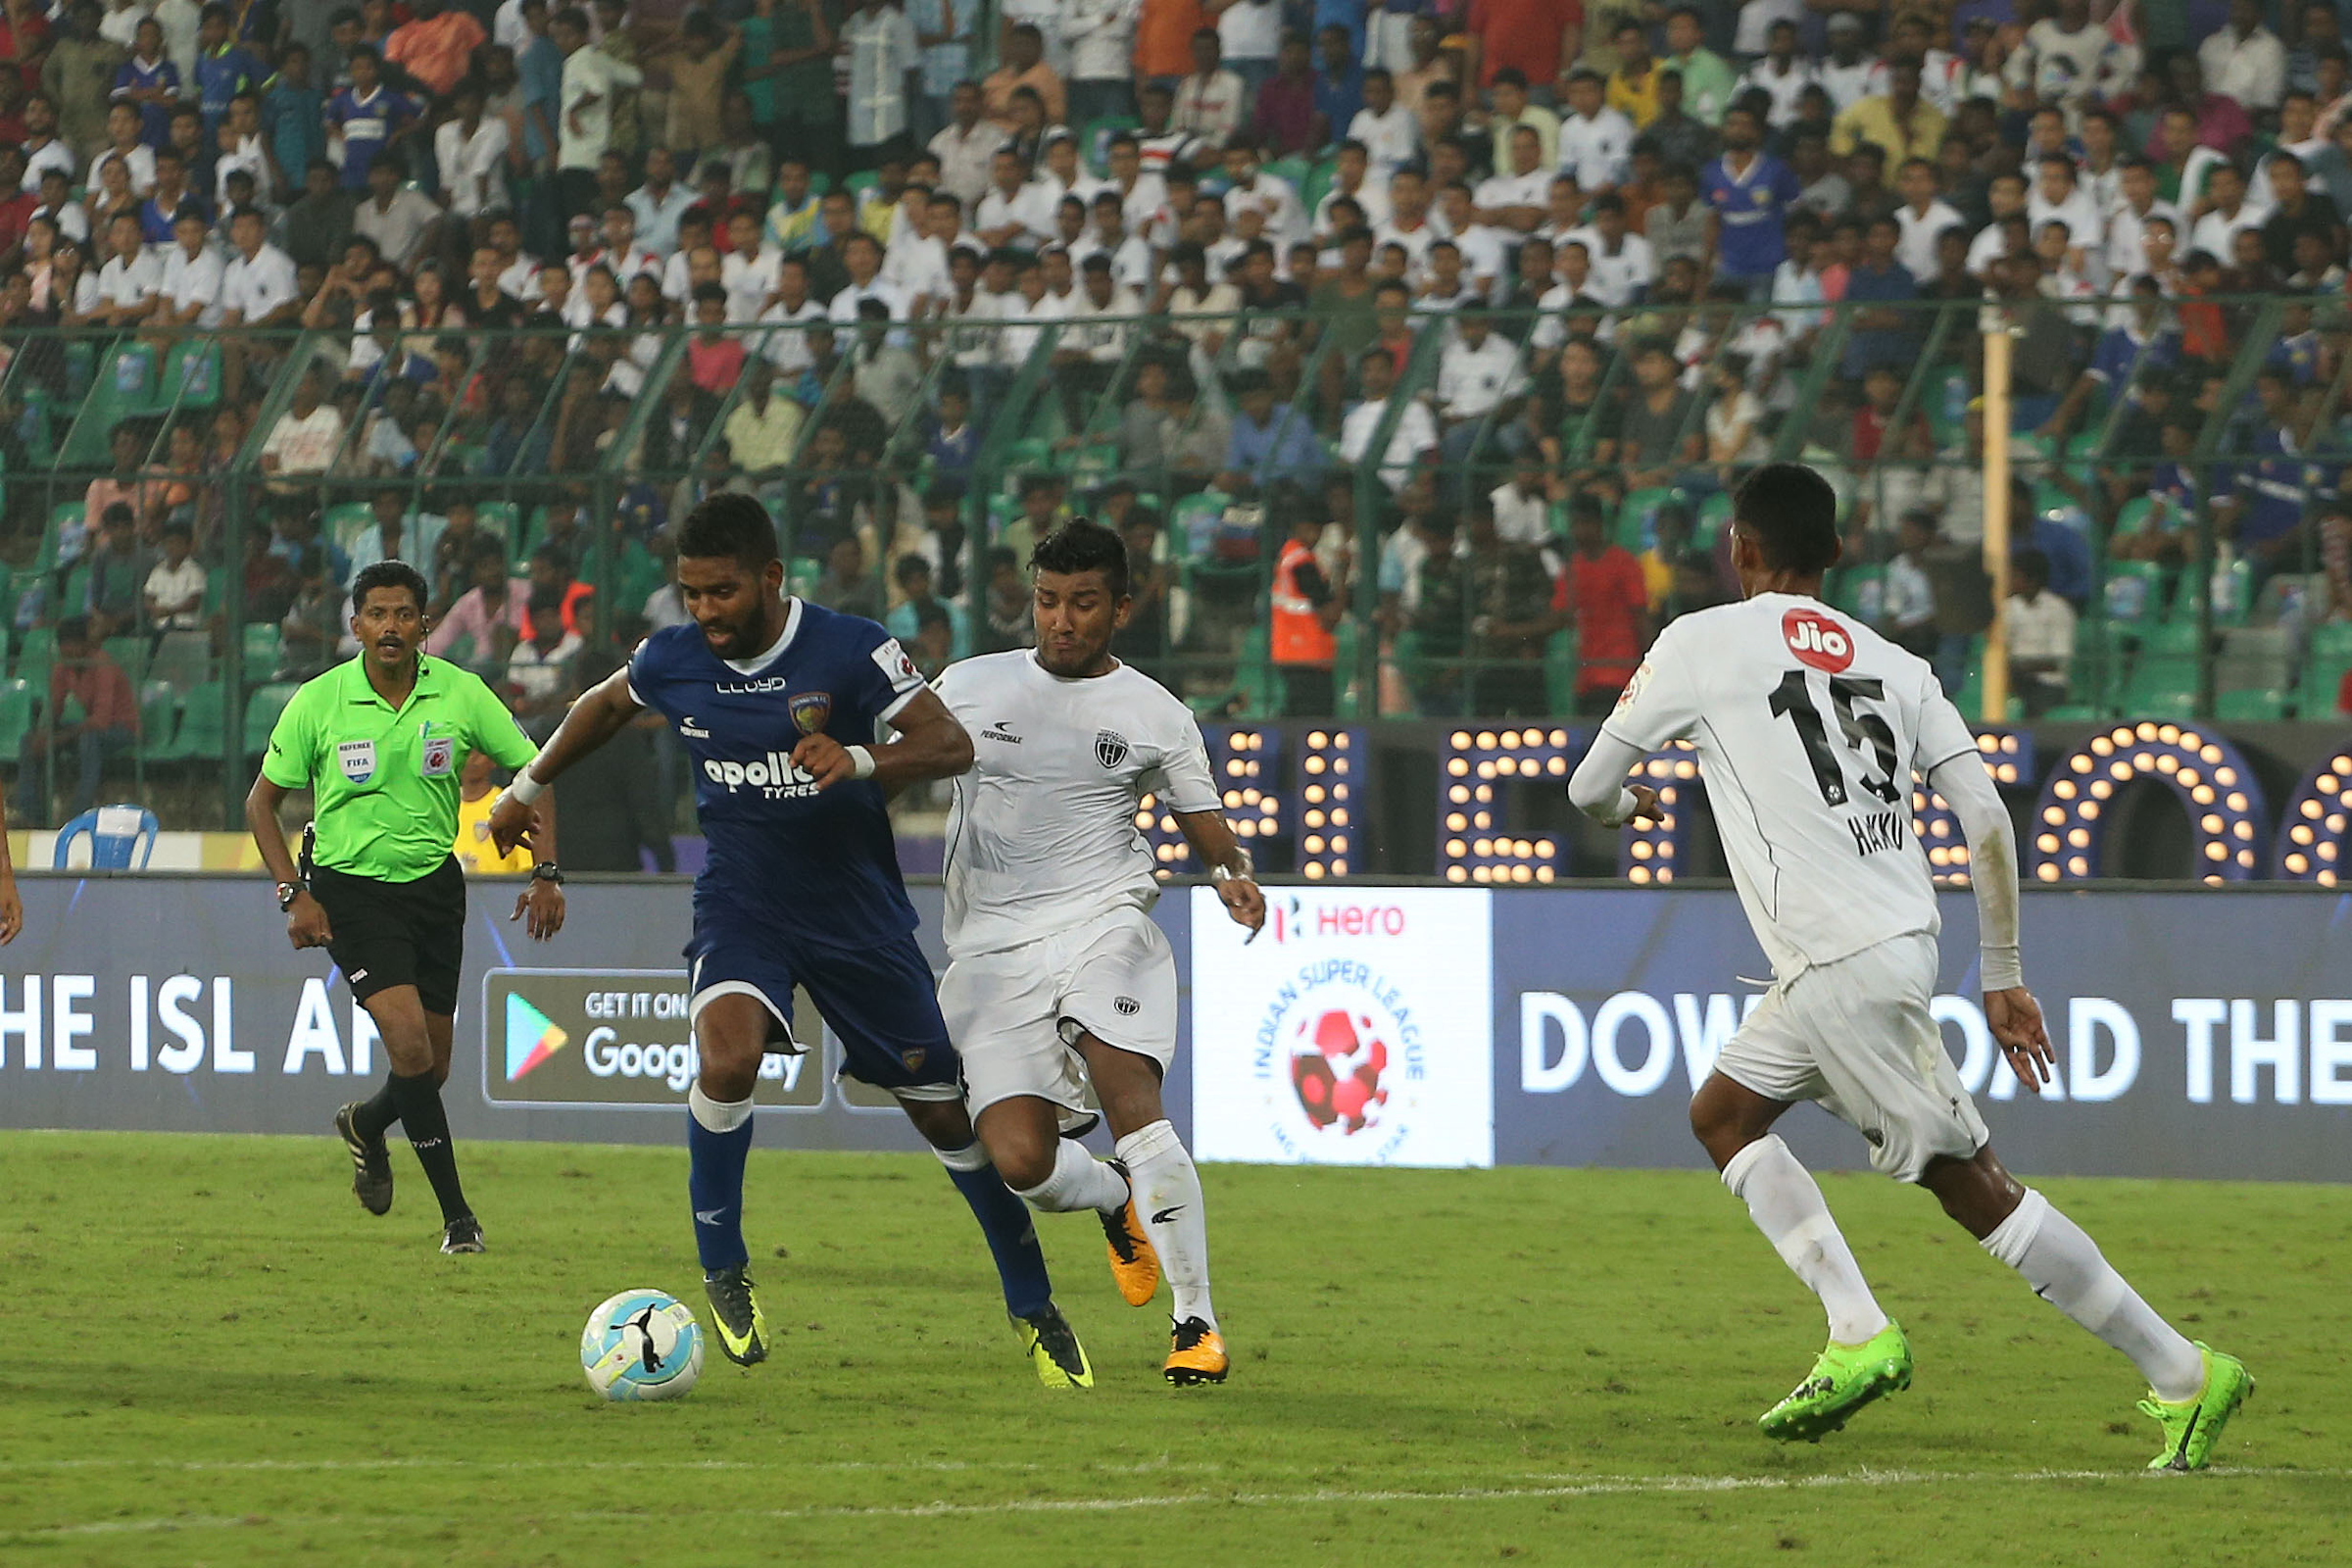 Gregory Nelson for Chennaiyin FC